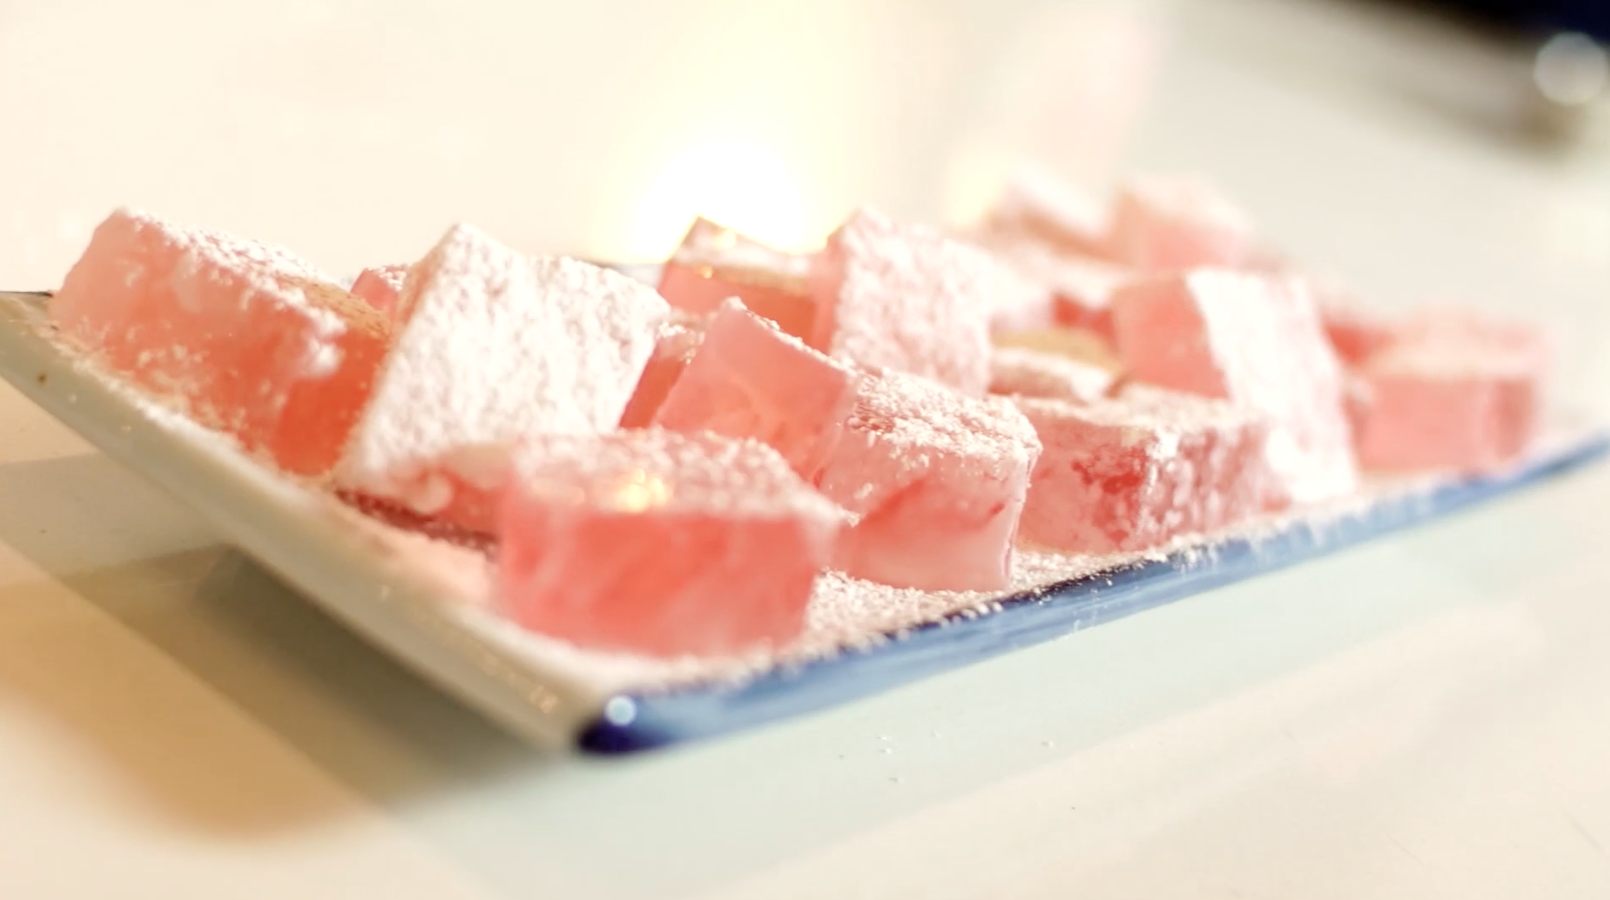 How to Make Turkish Delight from the Movie 'The Chronicles of Narnia'